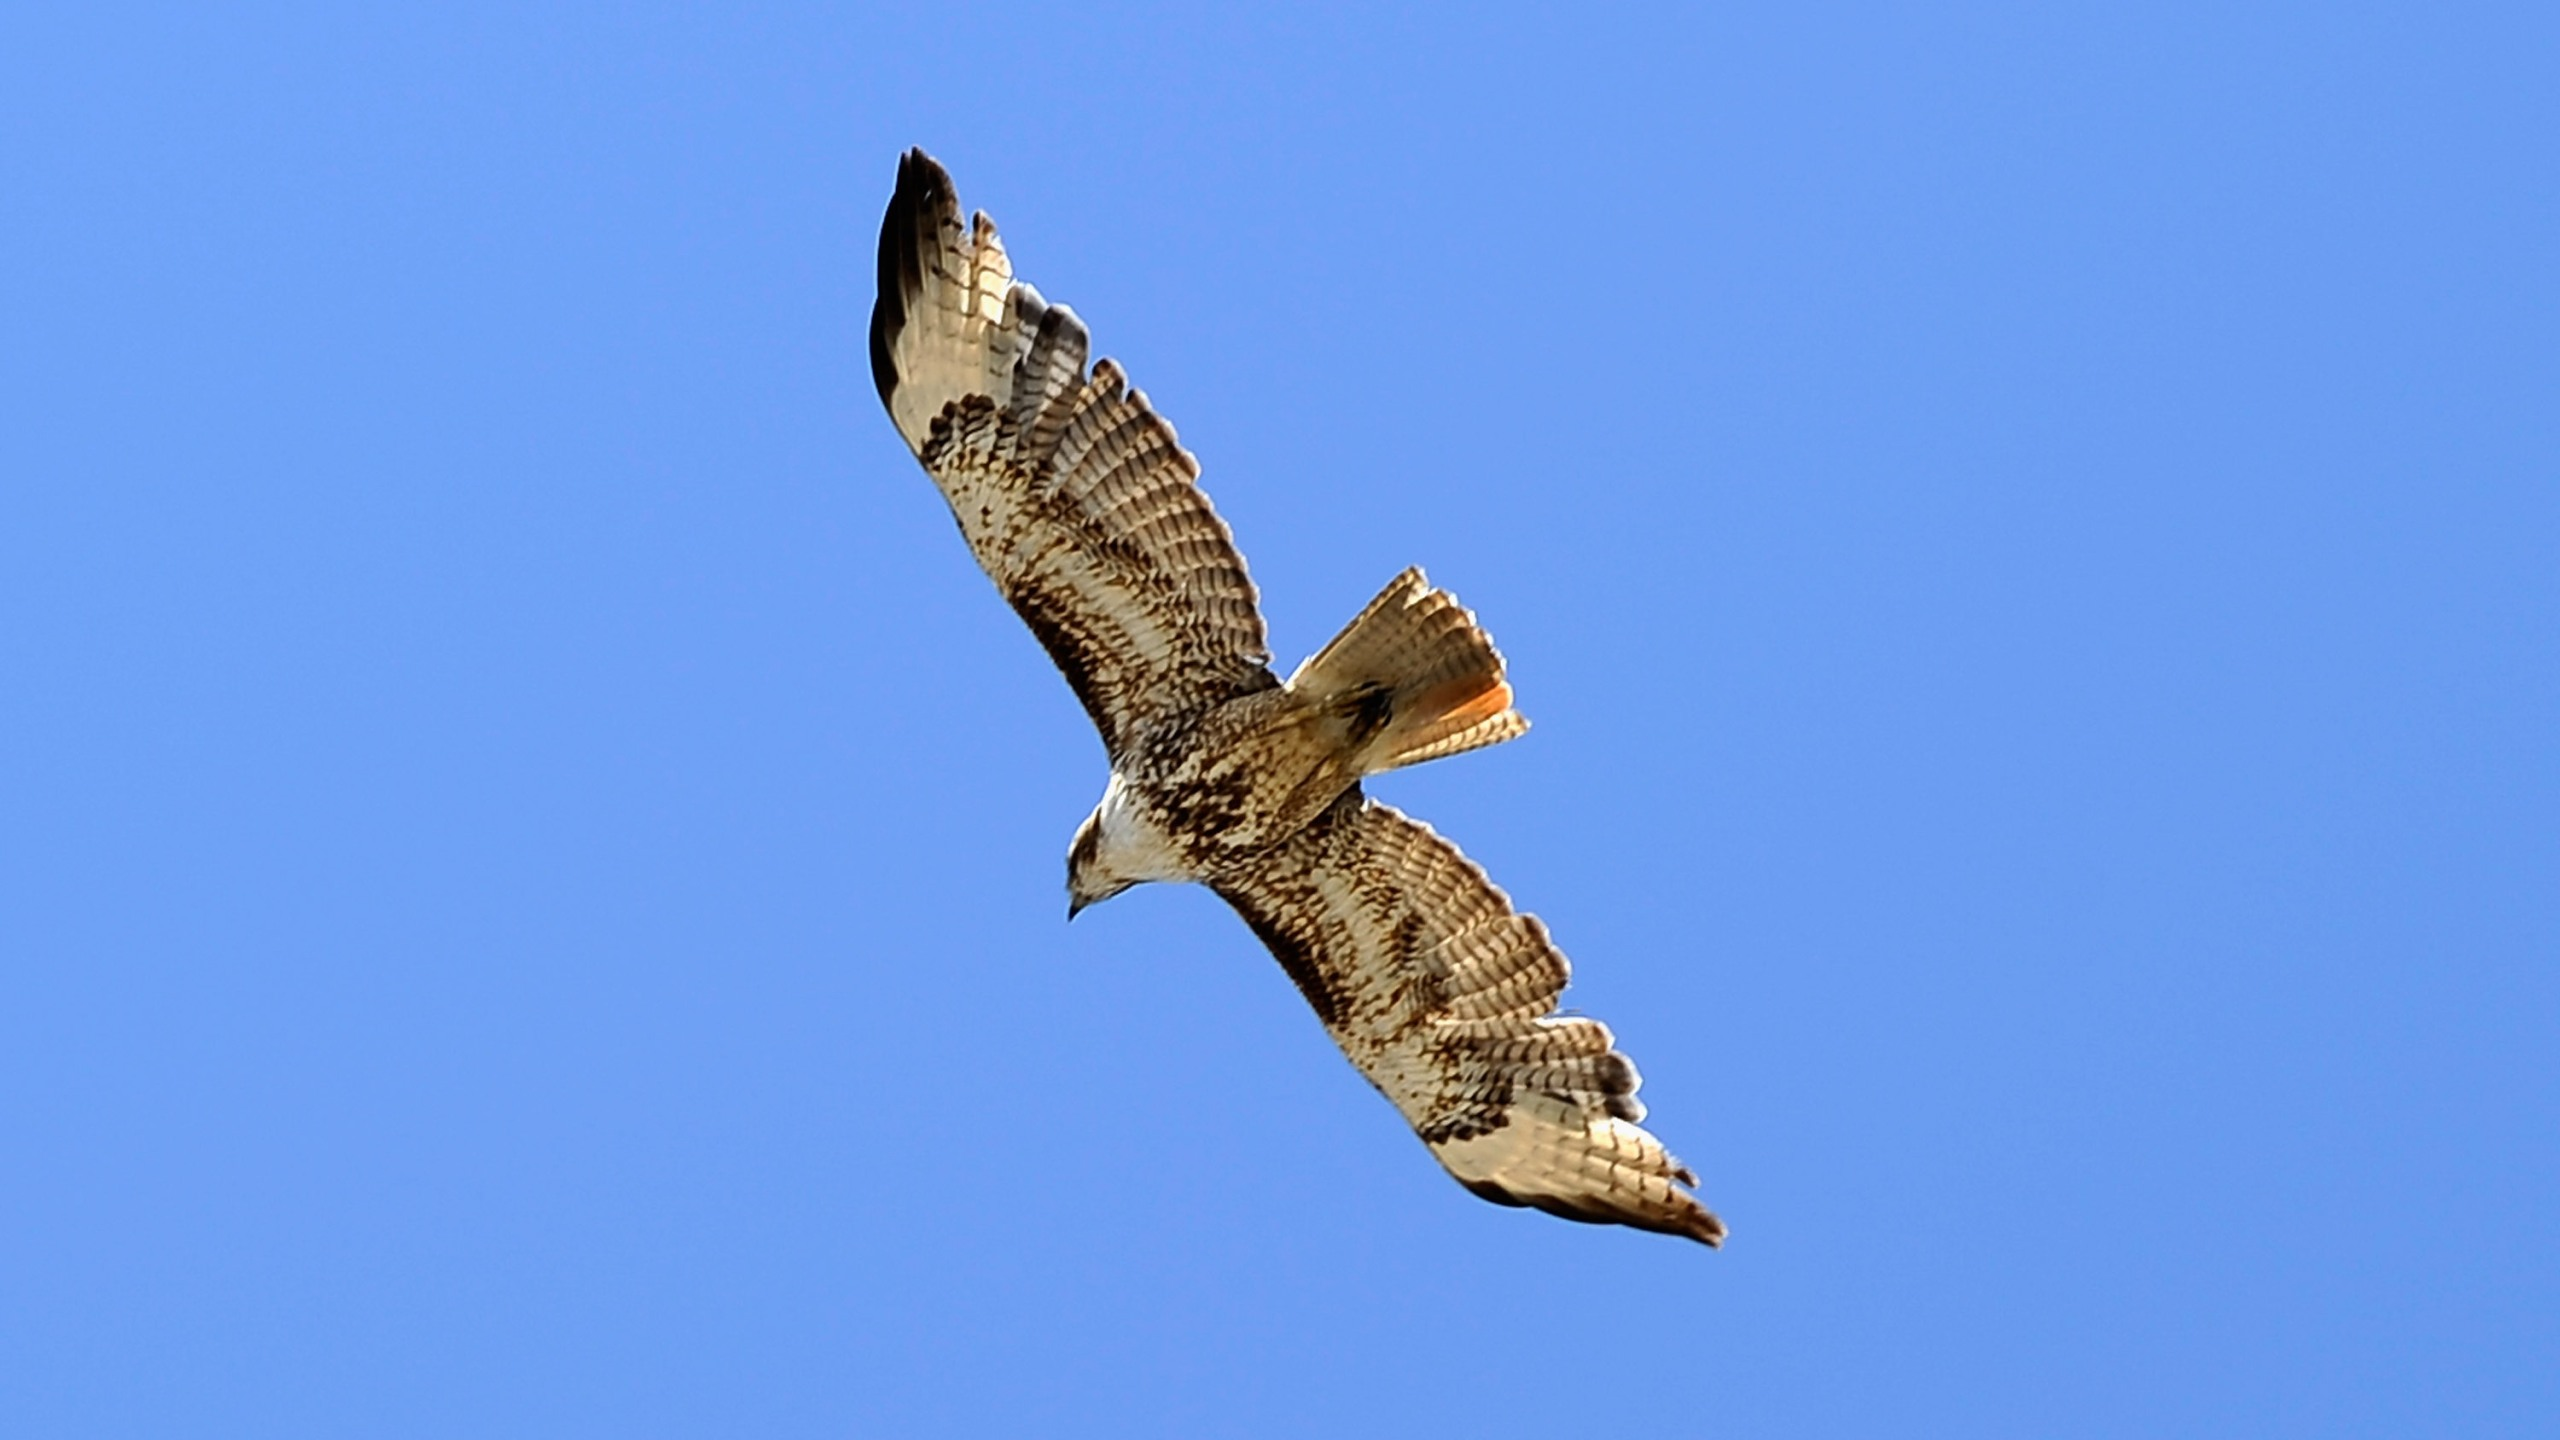 A file photo shows a red-tailed hawk in Long Beach, California on May 10, 2011. (Credit: Kevork Djansezian /Getty Images)